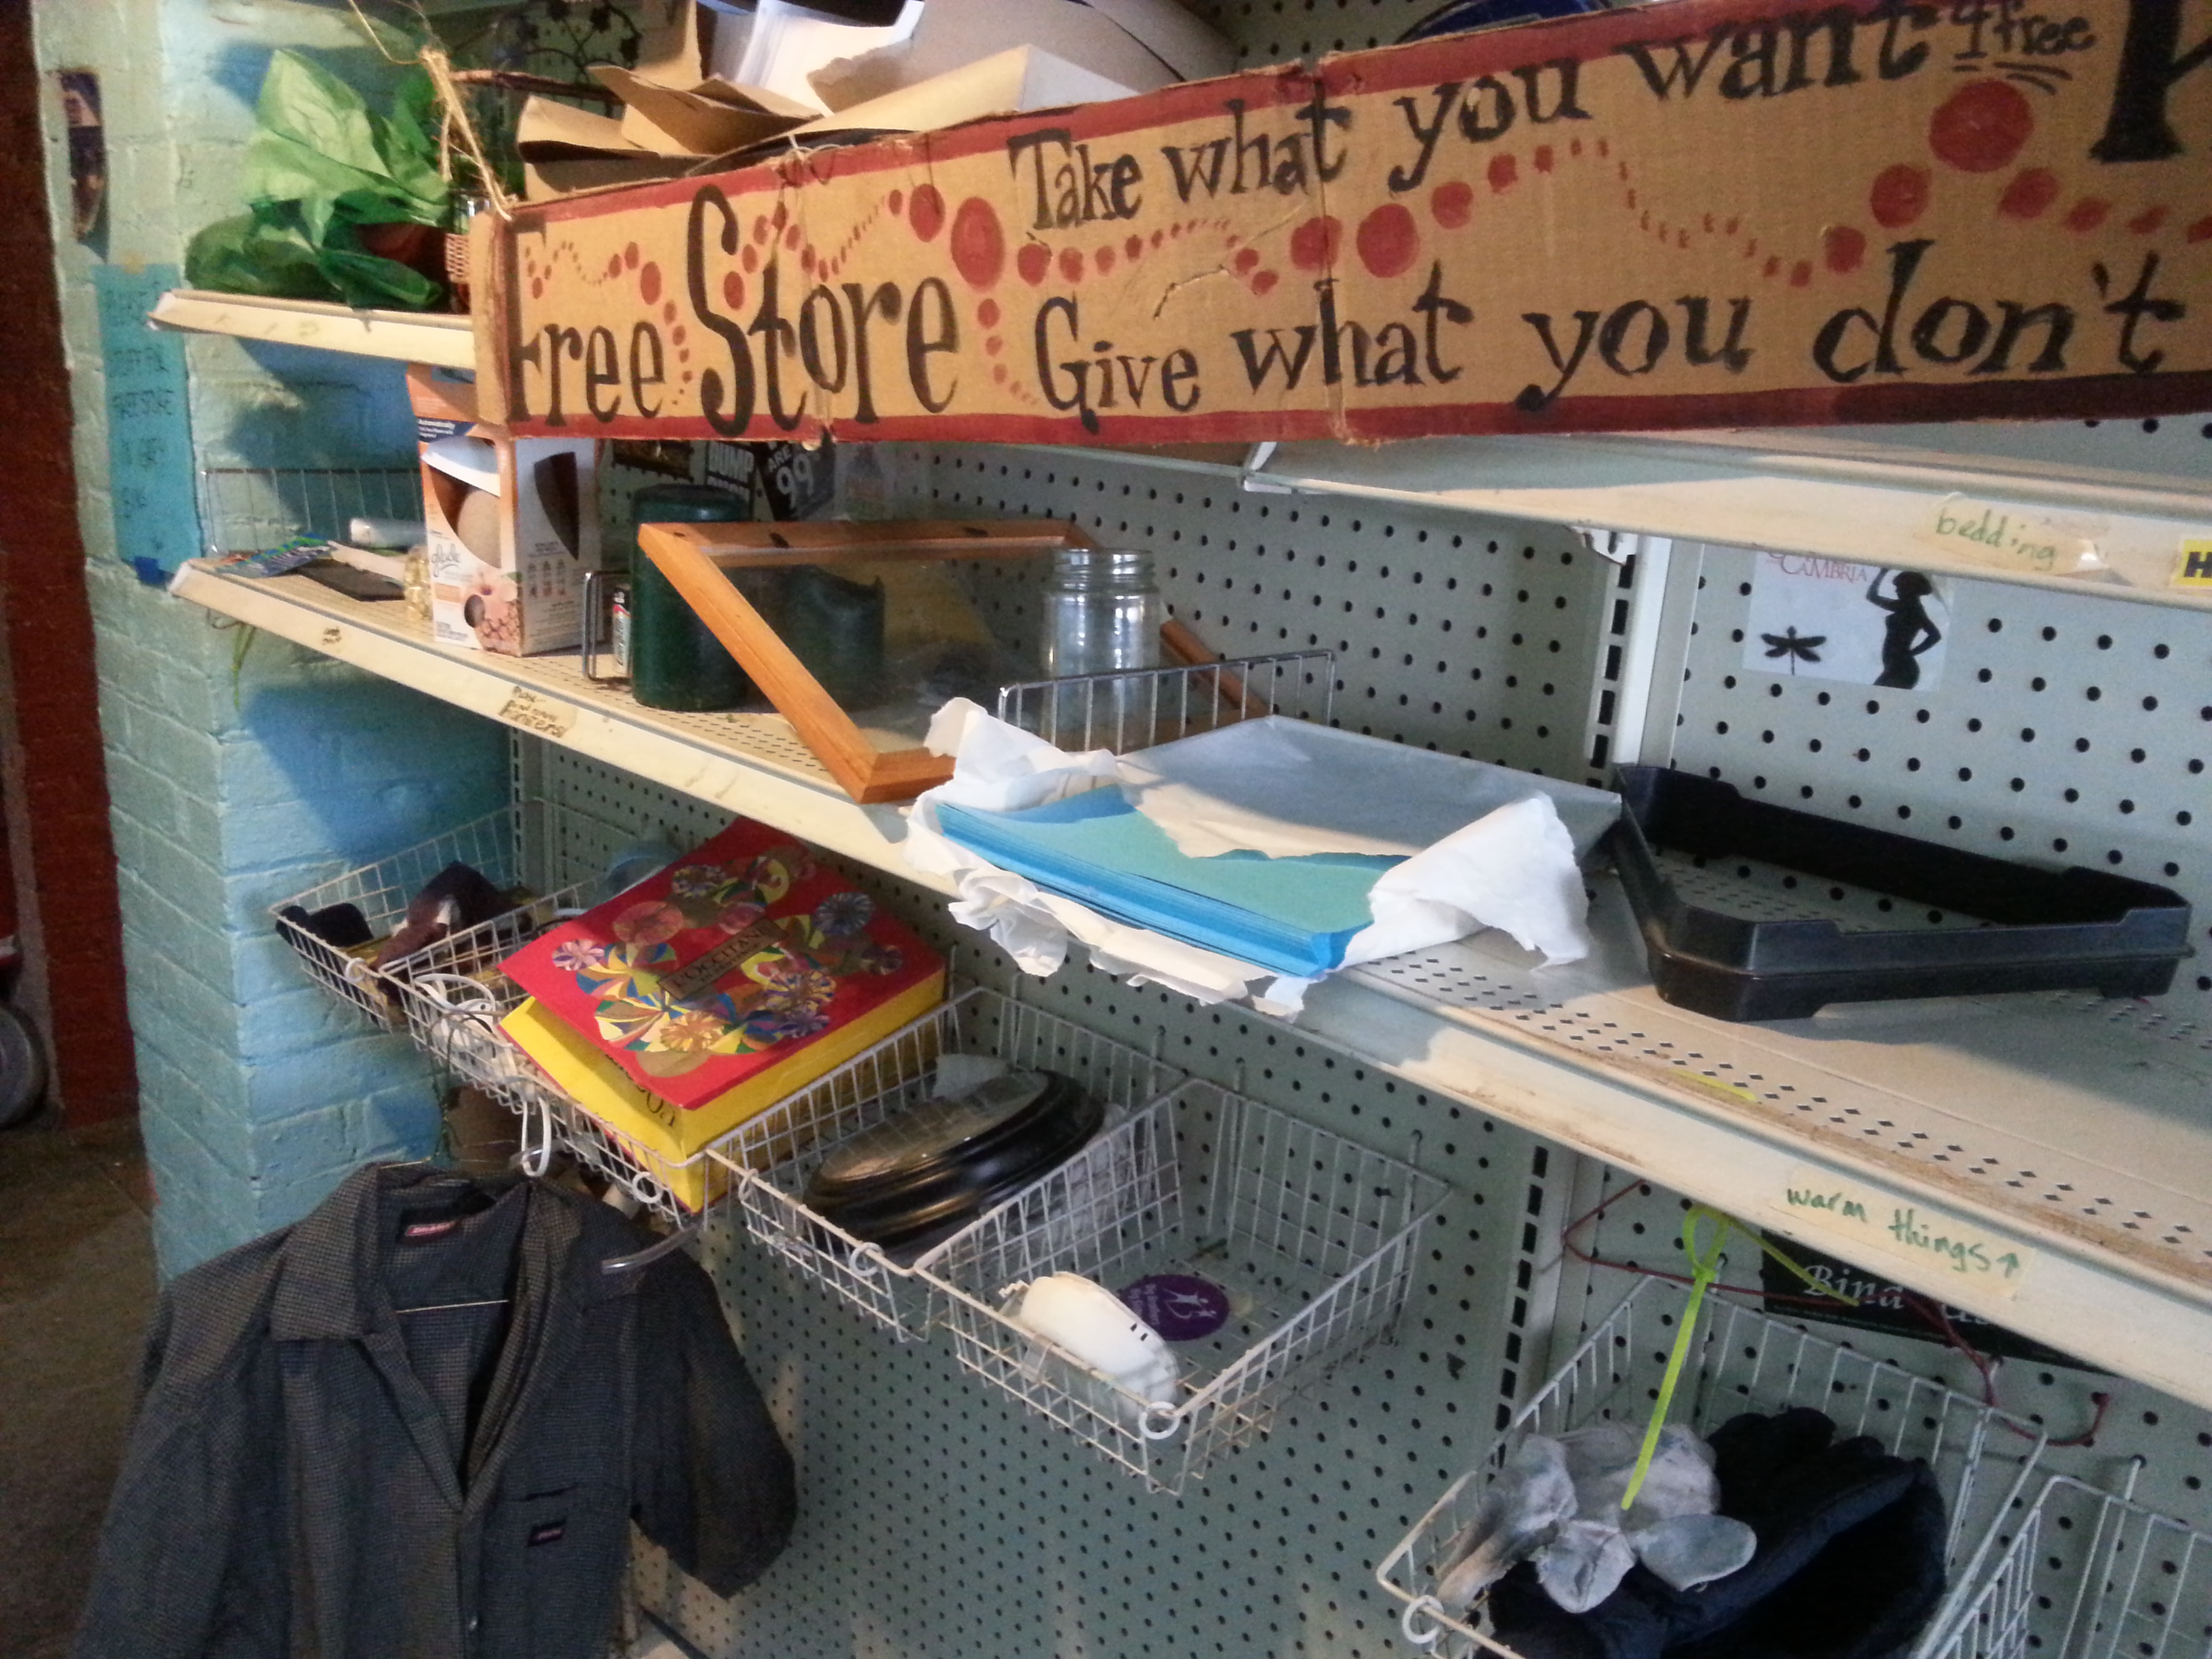 The Freestore at Ol'Wondermoth is where you can take what you want and give what you don't!